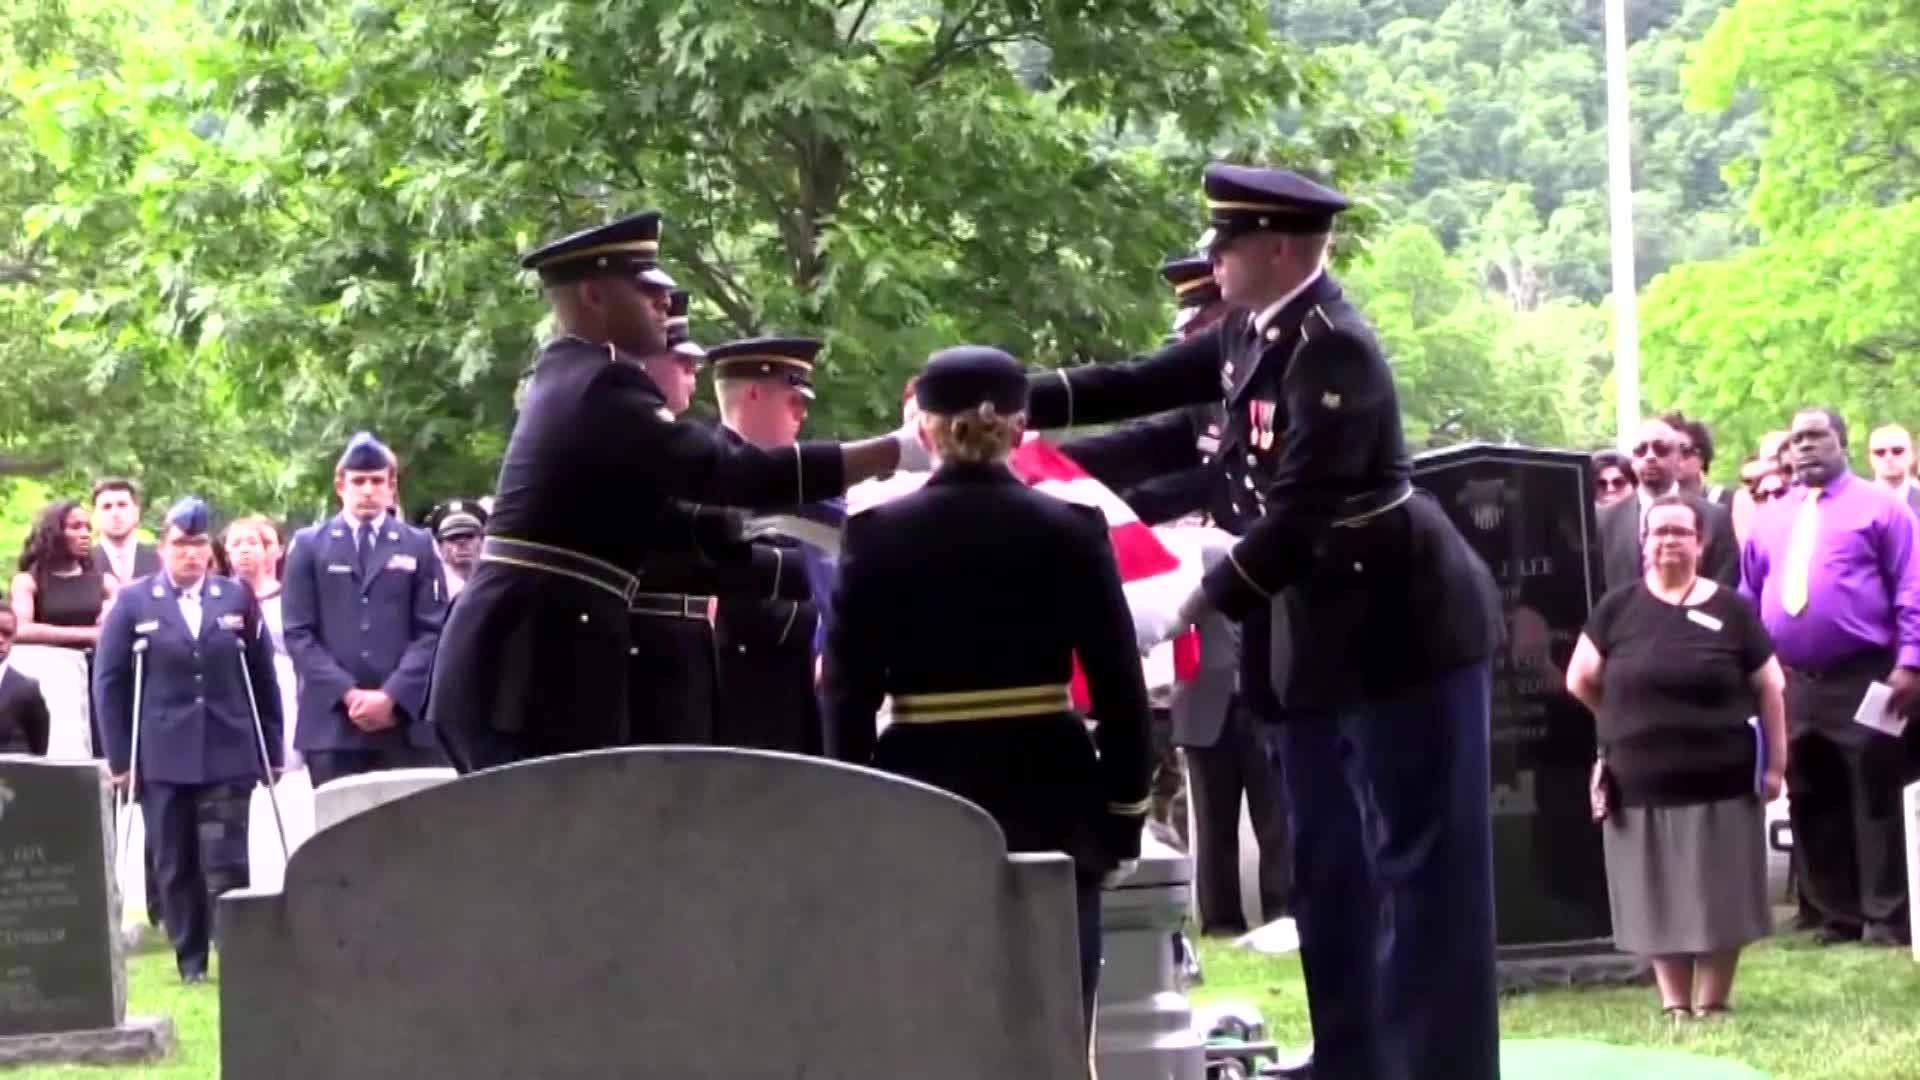 Funeral services were held Saturday for the West Point cadet from New Jersey